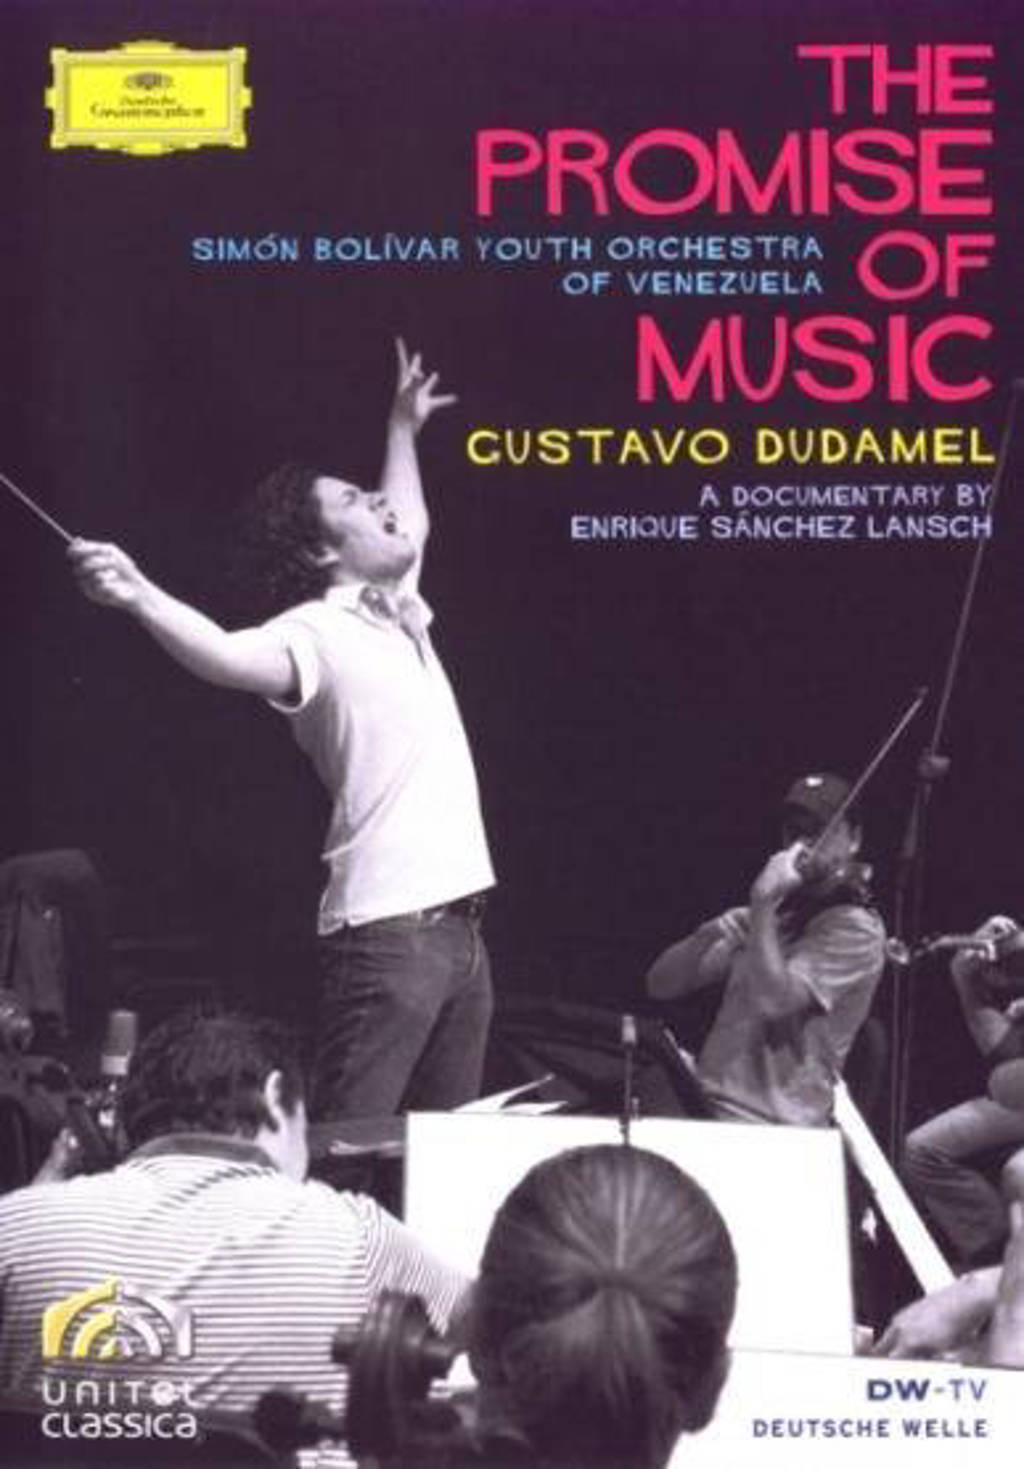 Gustavo Dudamel - promise of music (DVD)